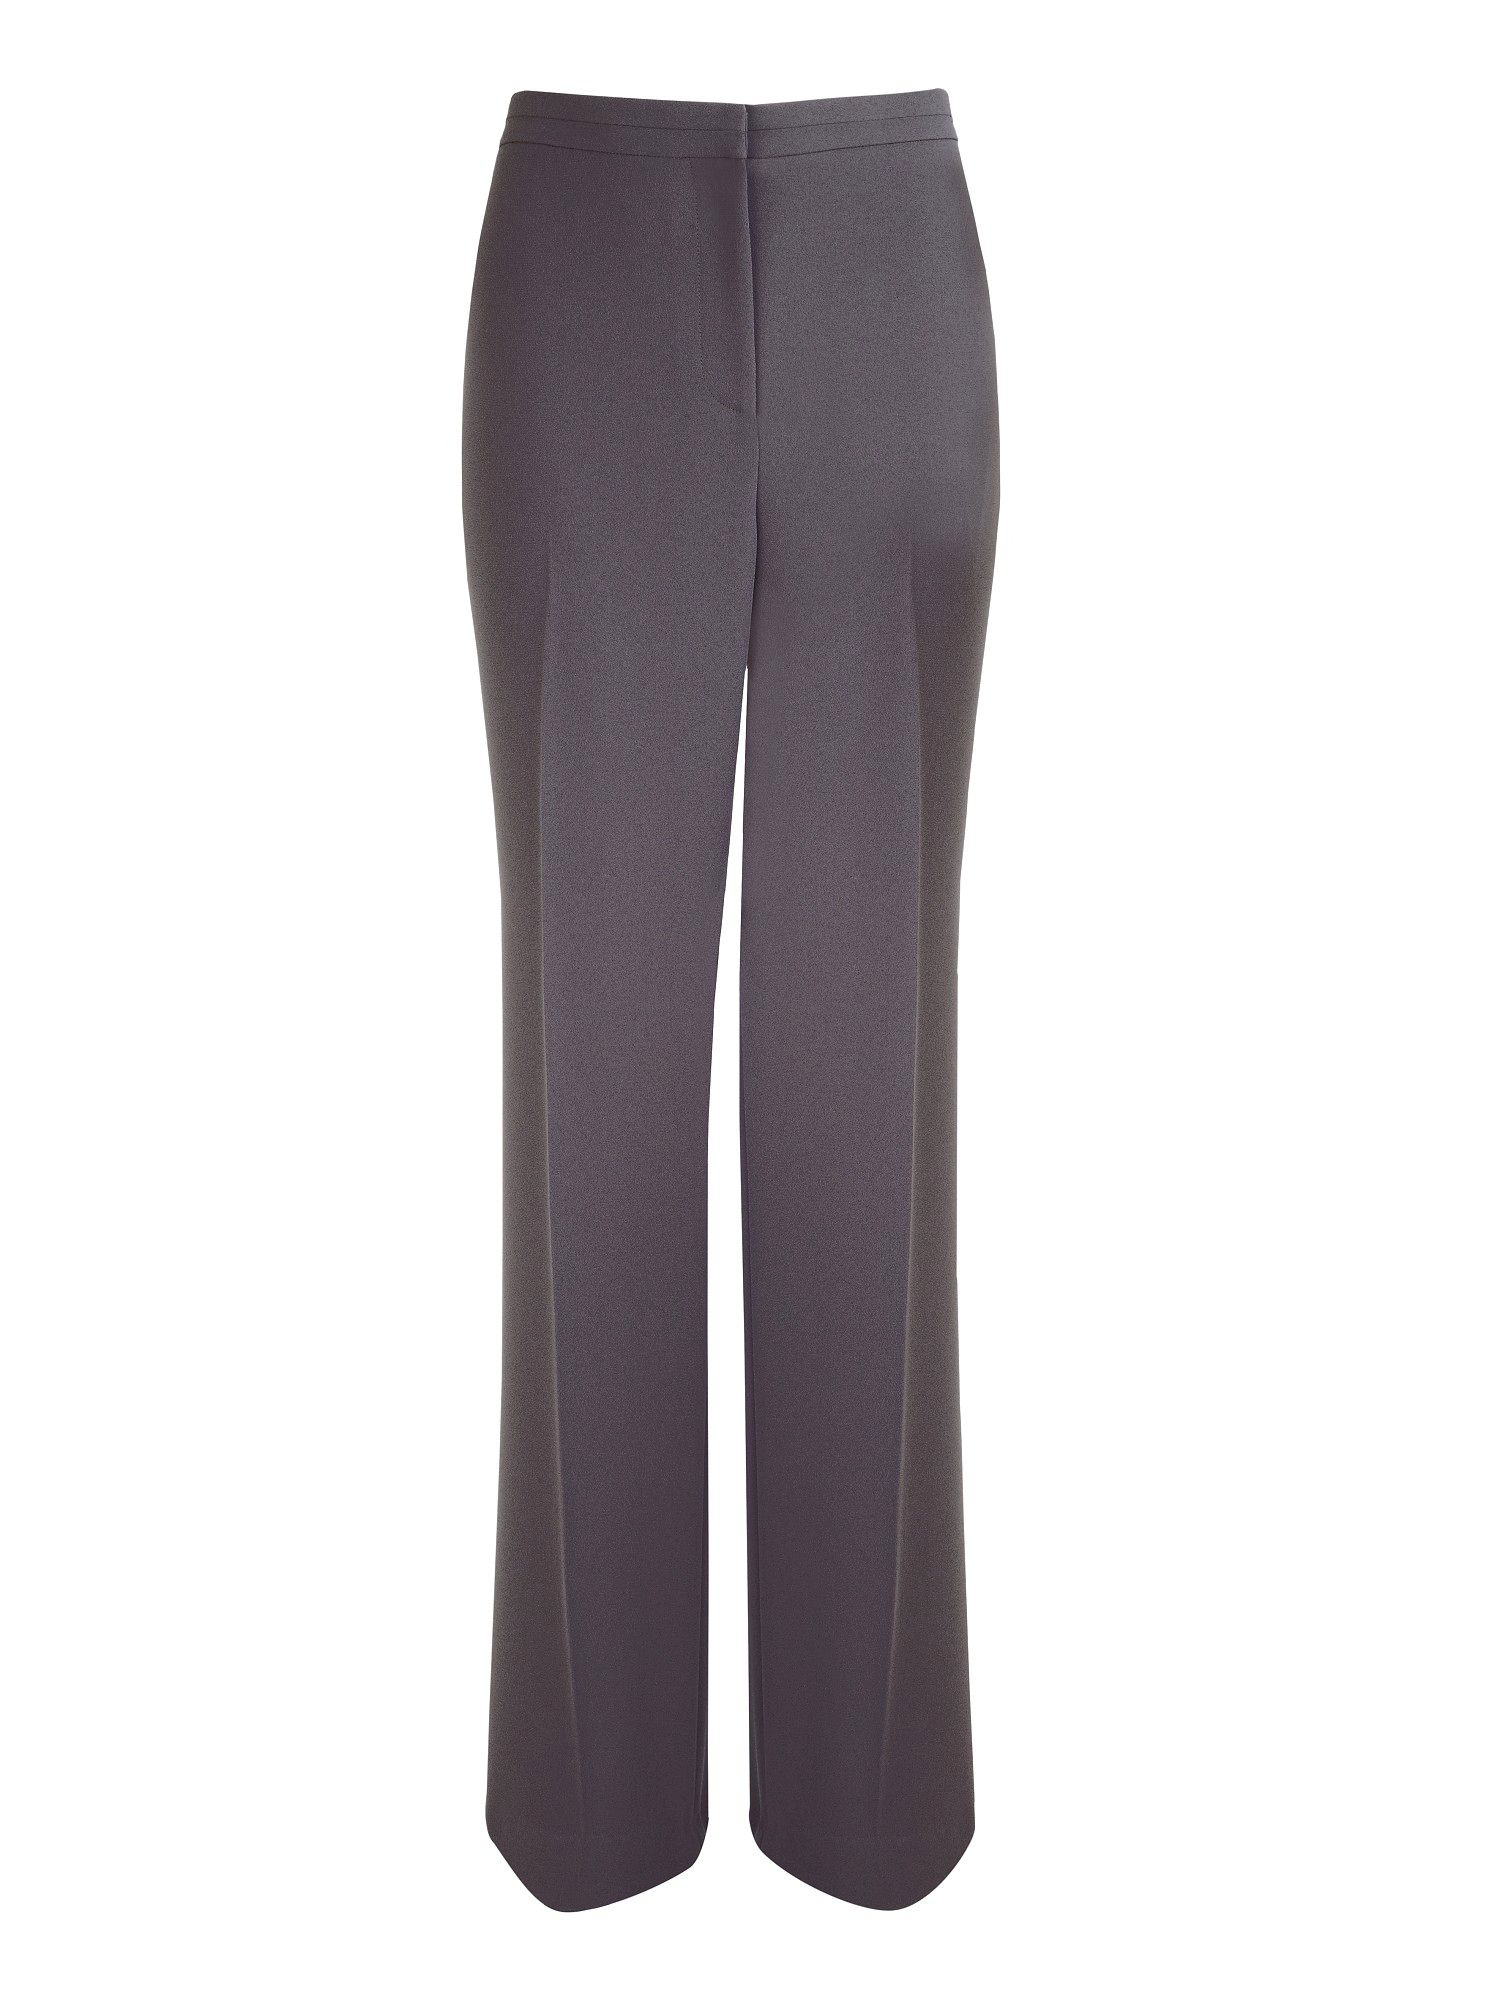 Dove grey trouser